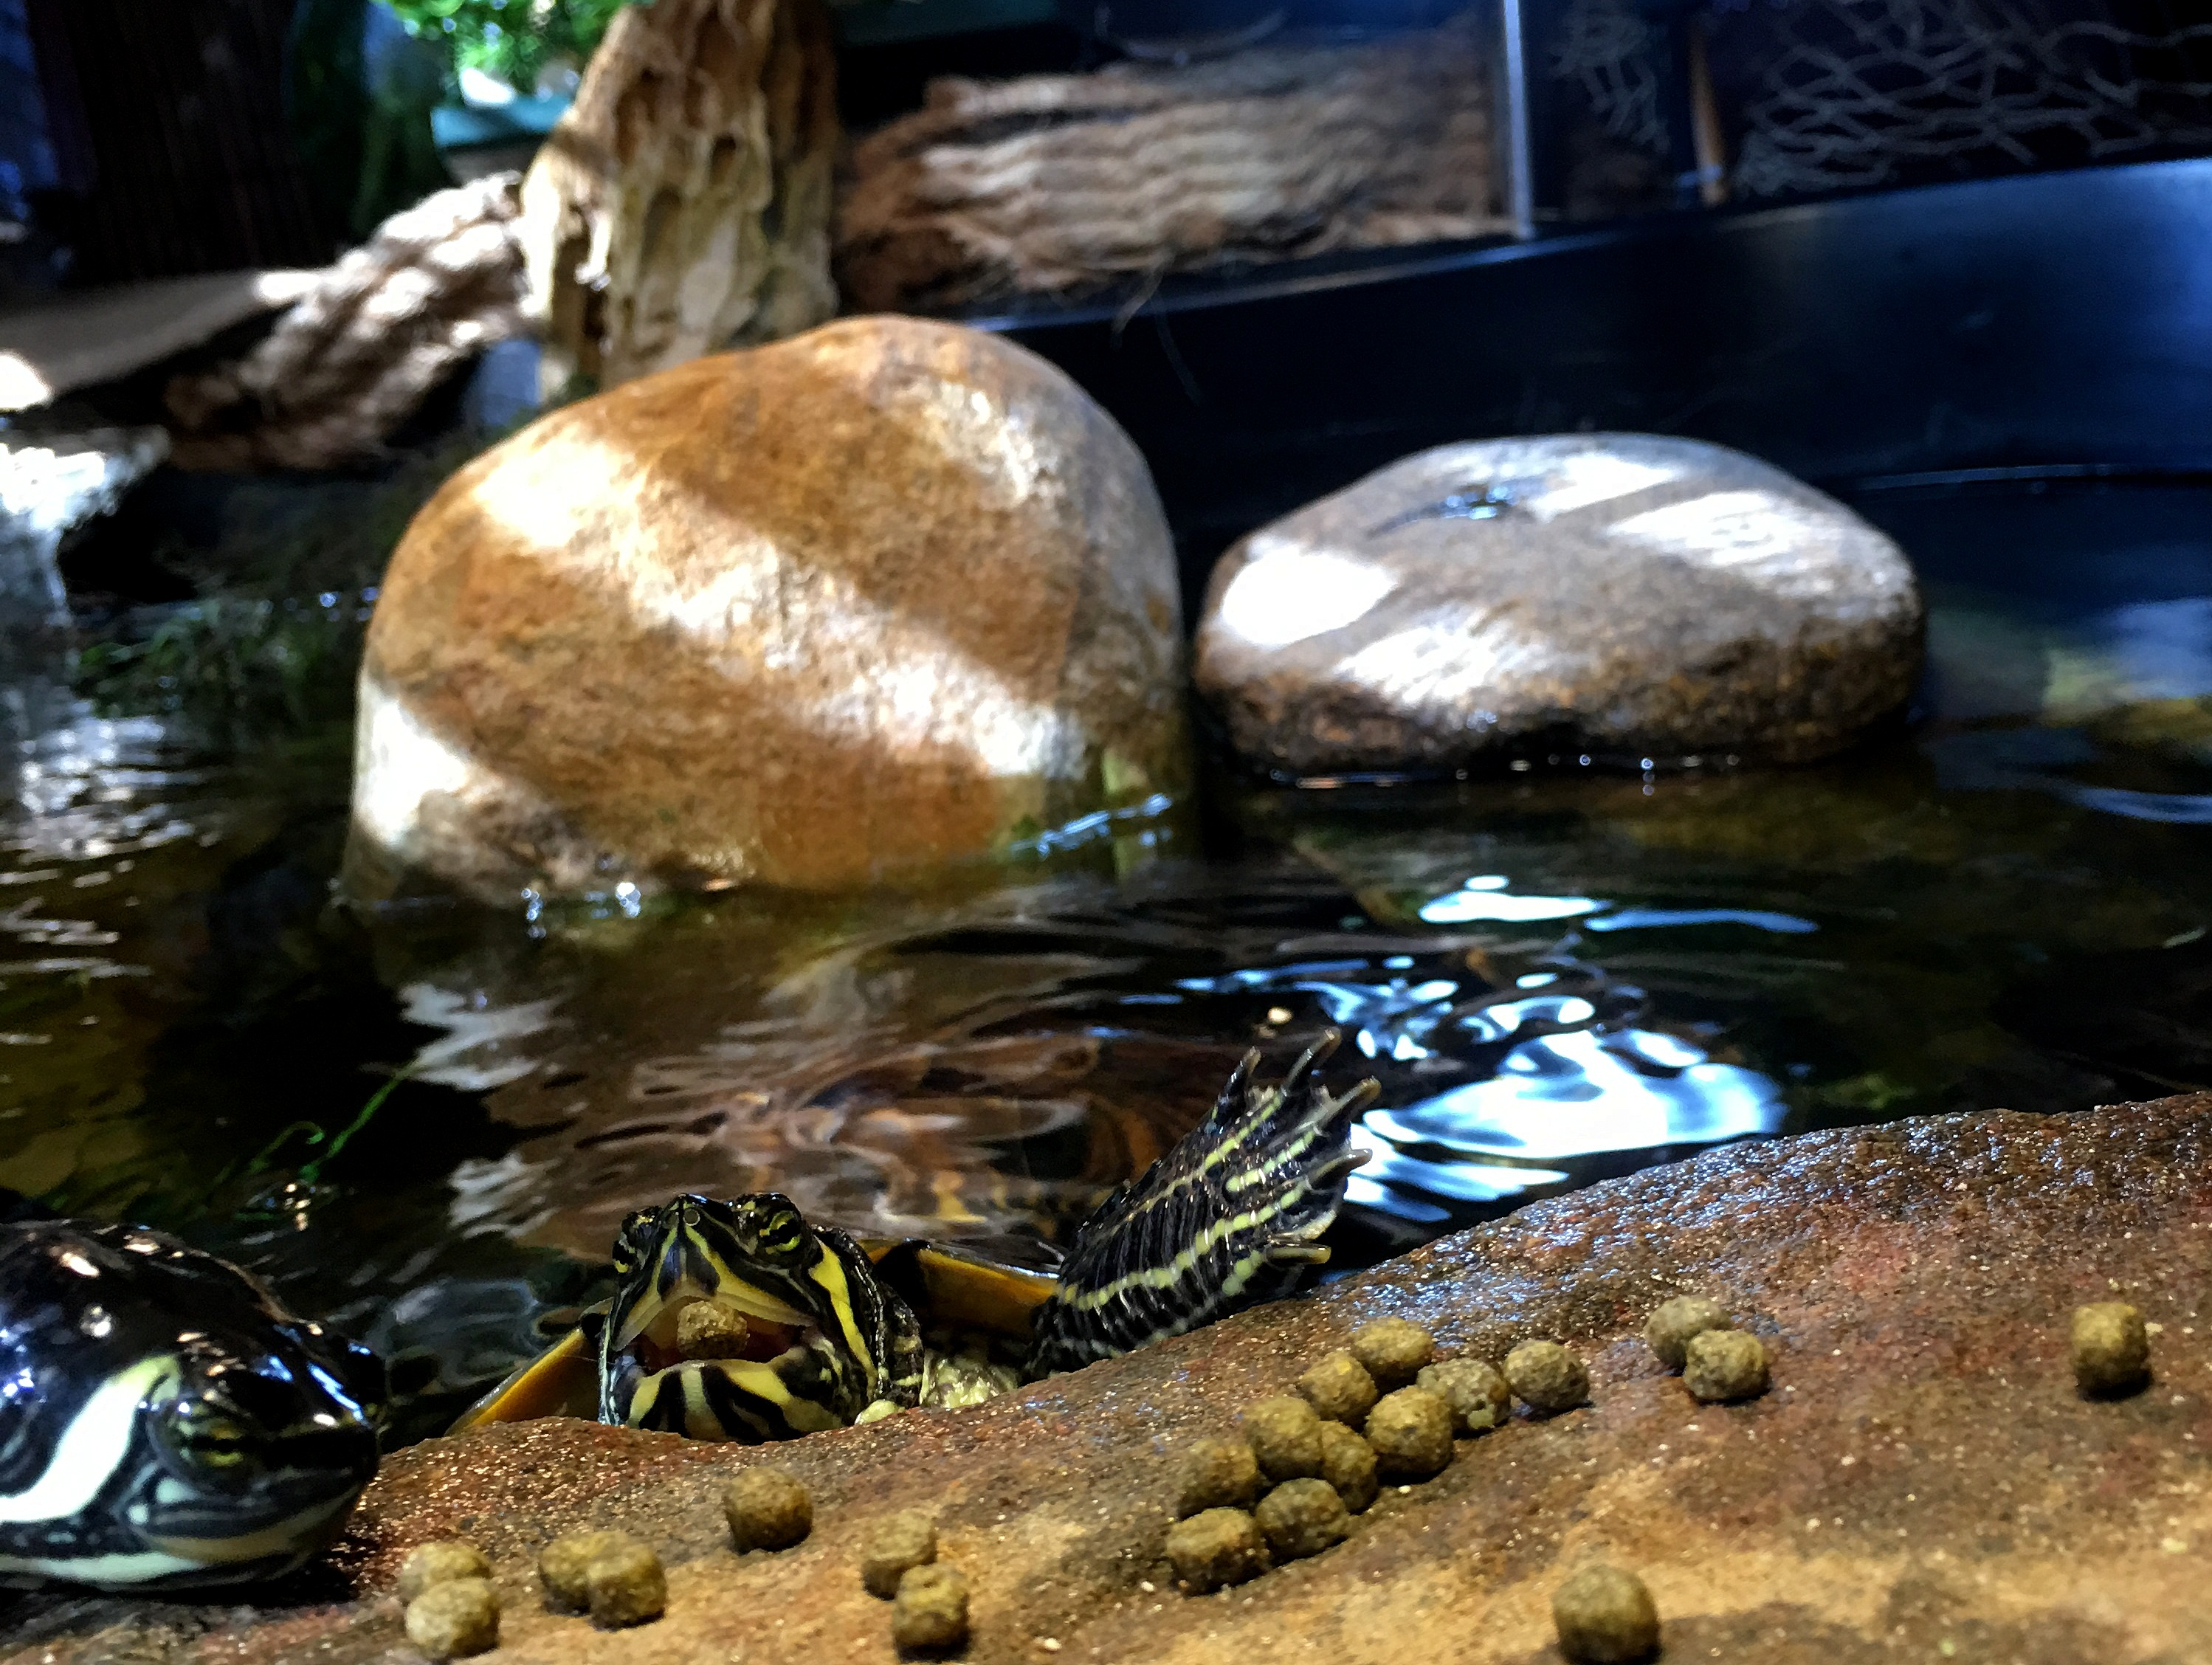 YBST ~ Yellow Bellied Slider Turtles–Quarterly Update [Feeding Frenzy], 10/26